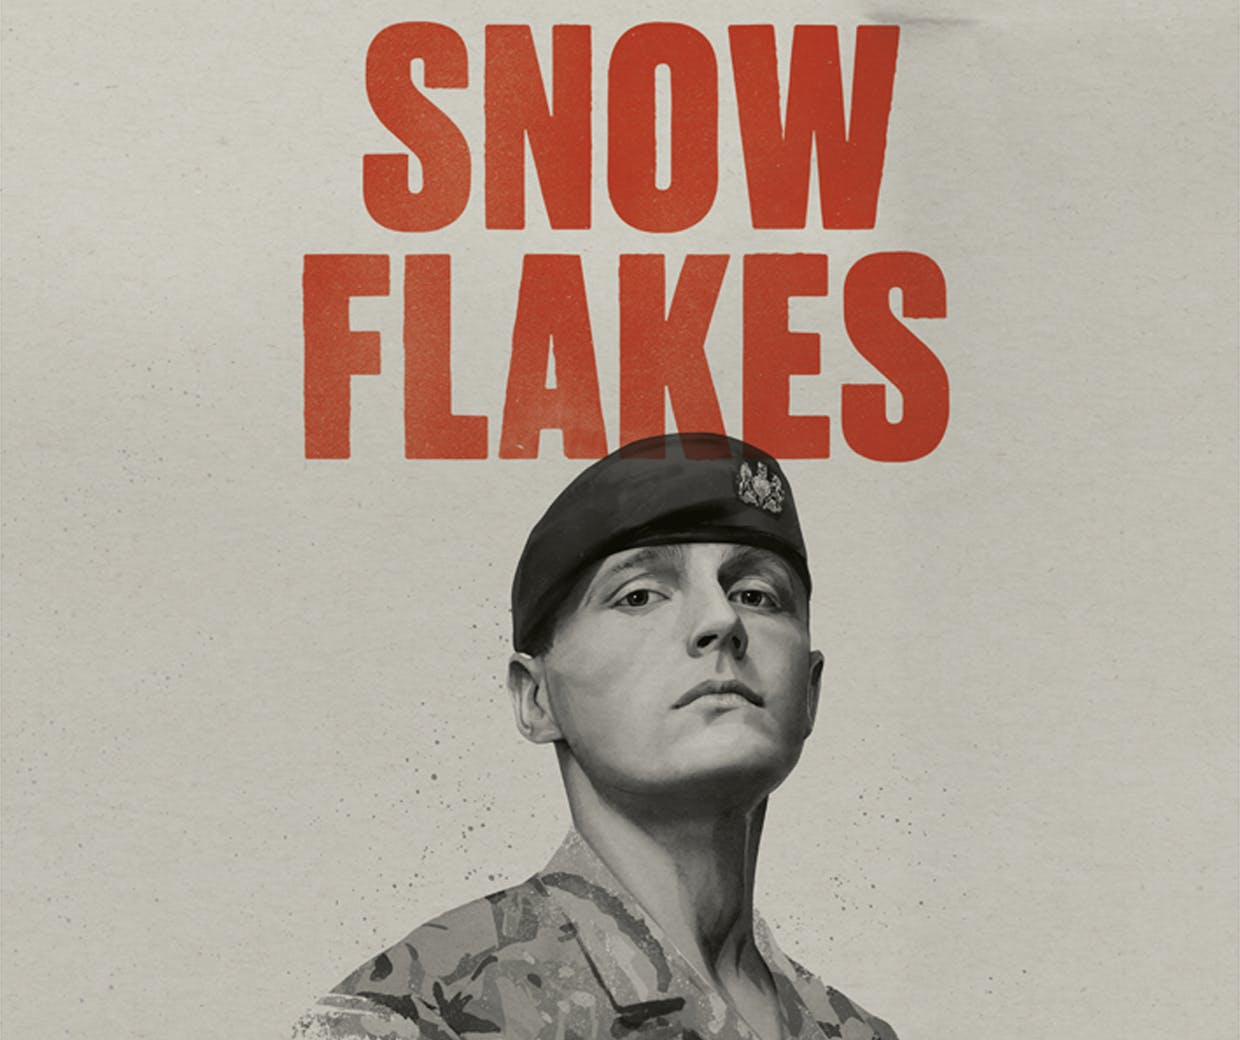 How the British Army's 'Snowflake' ads led to a 'shift in perceptions and attitudes'